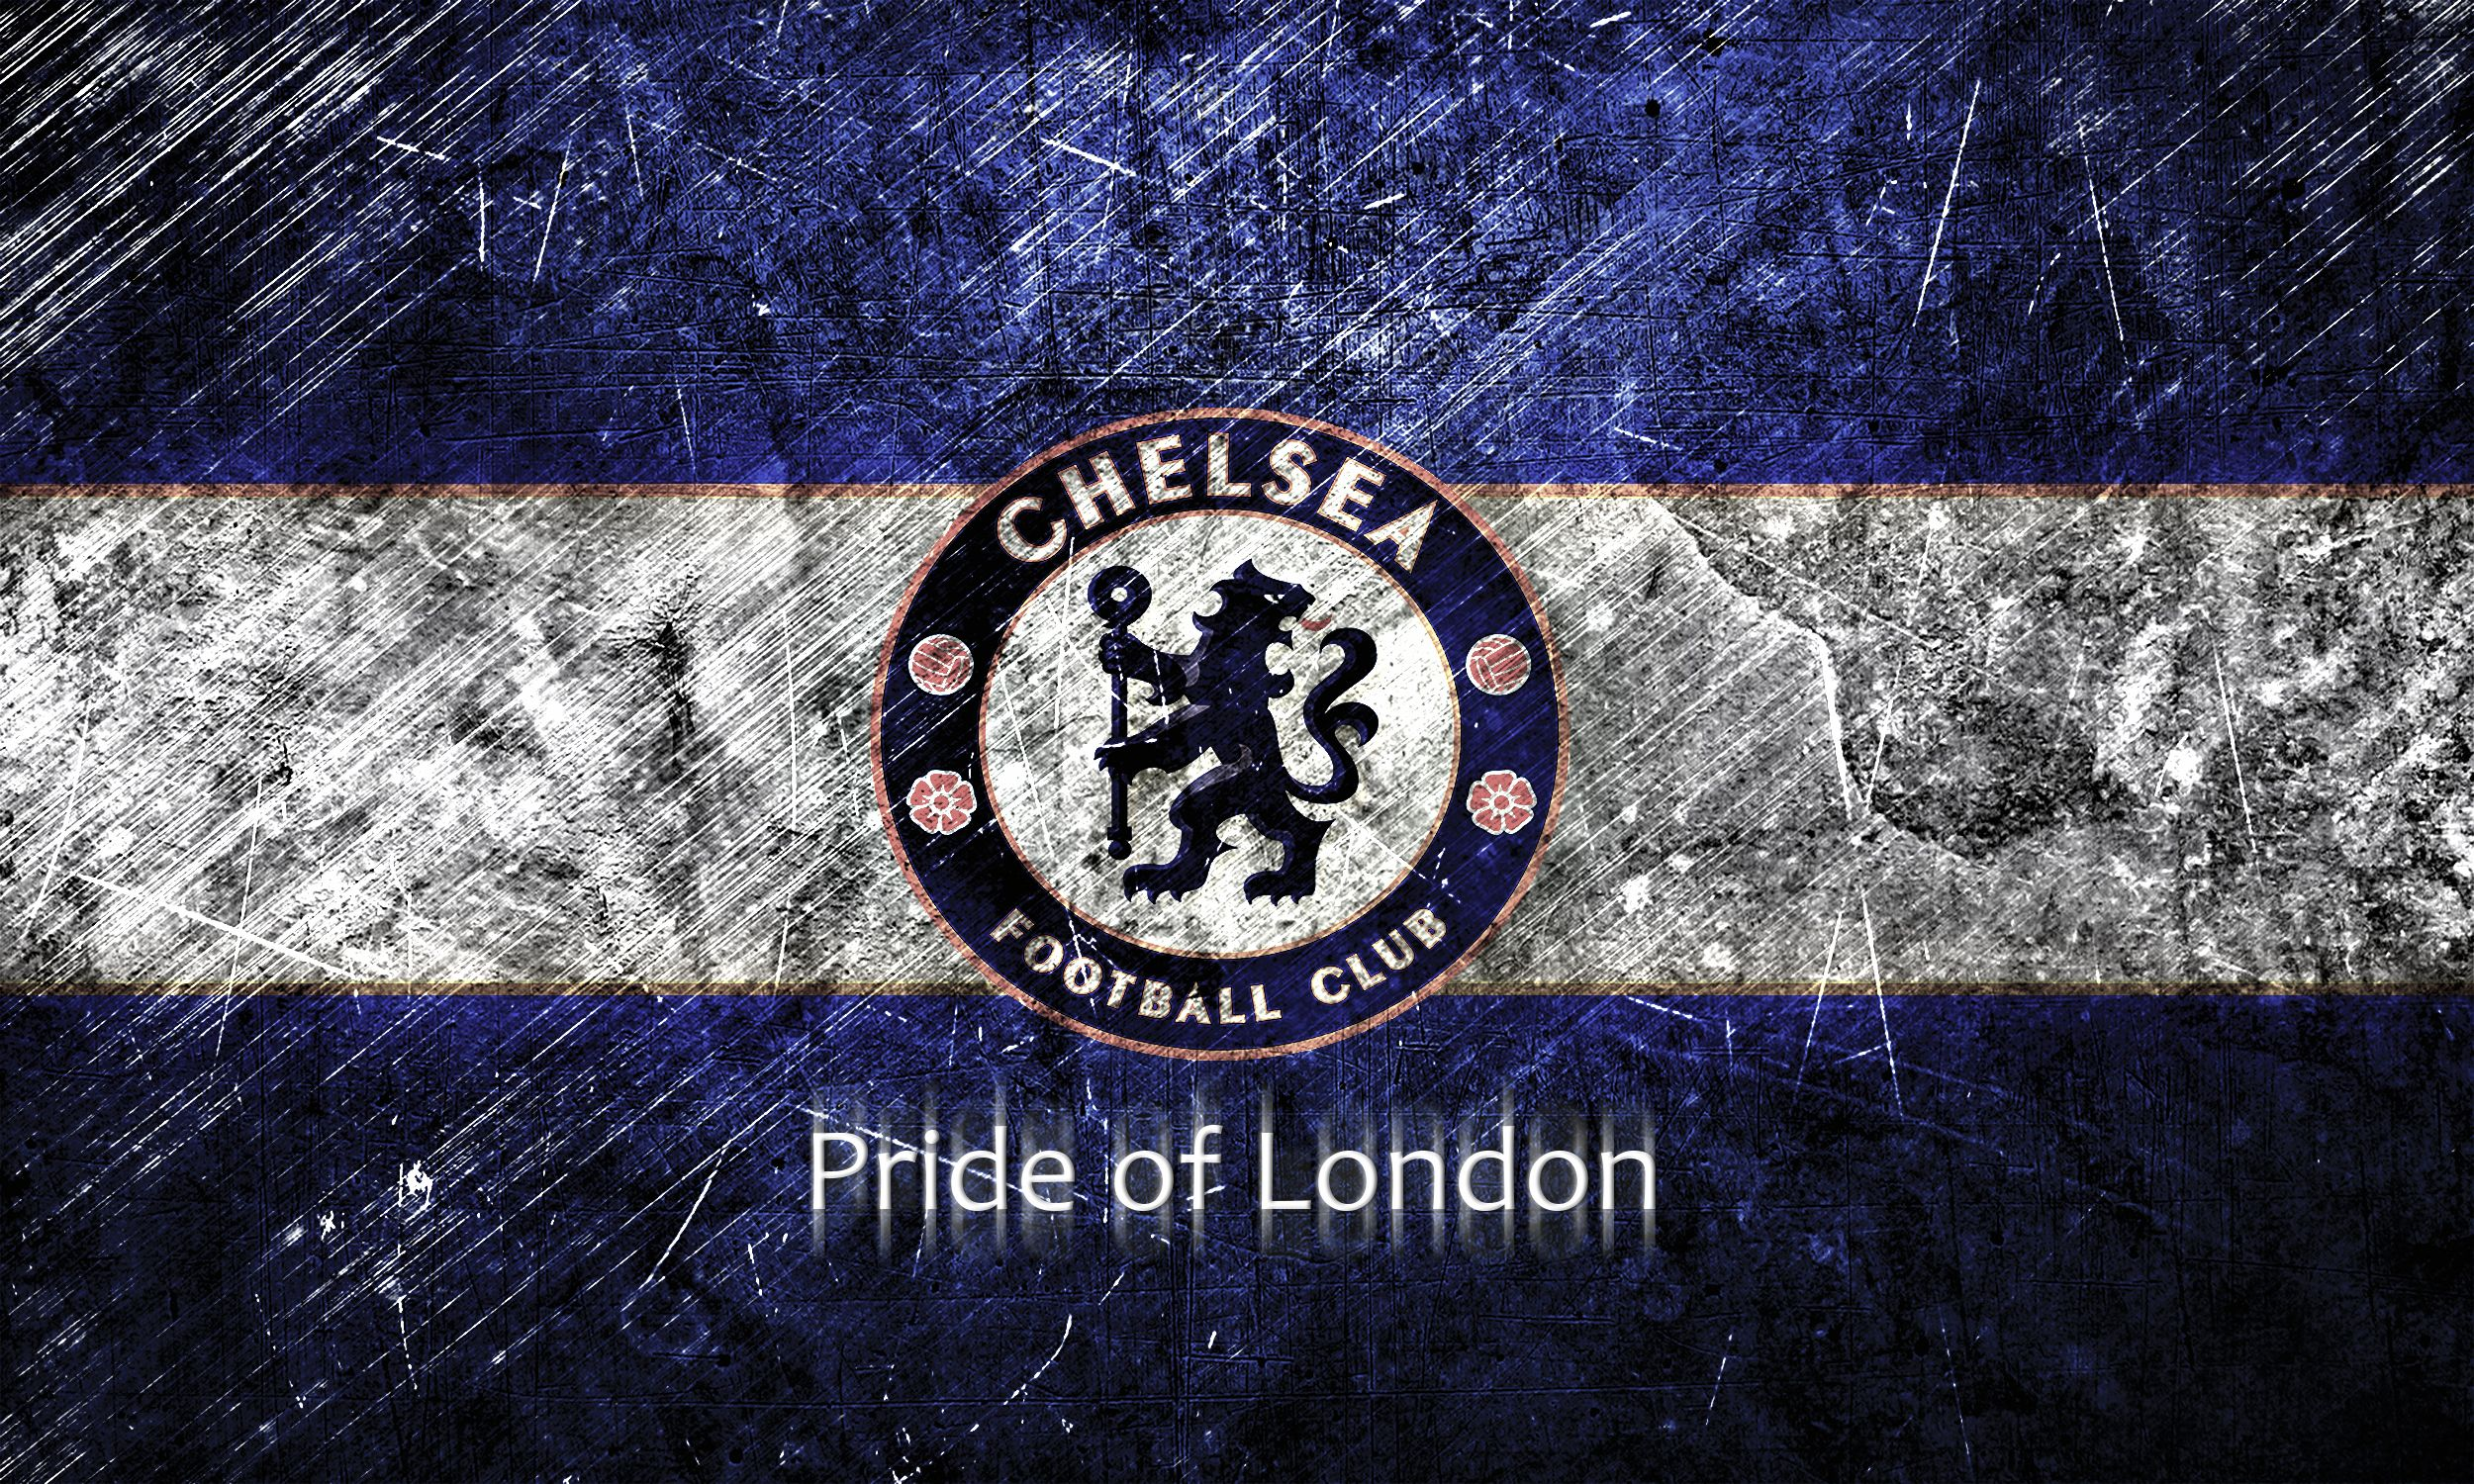 Chelsea logo football club wallpaper background football chelsea logo football club wallpaper background voltagebd Gallery